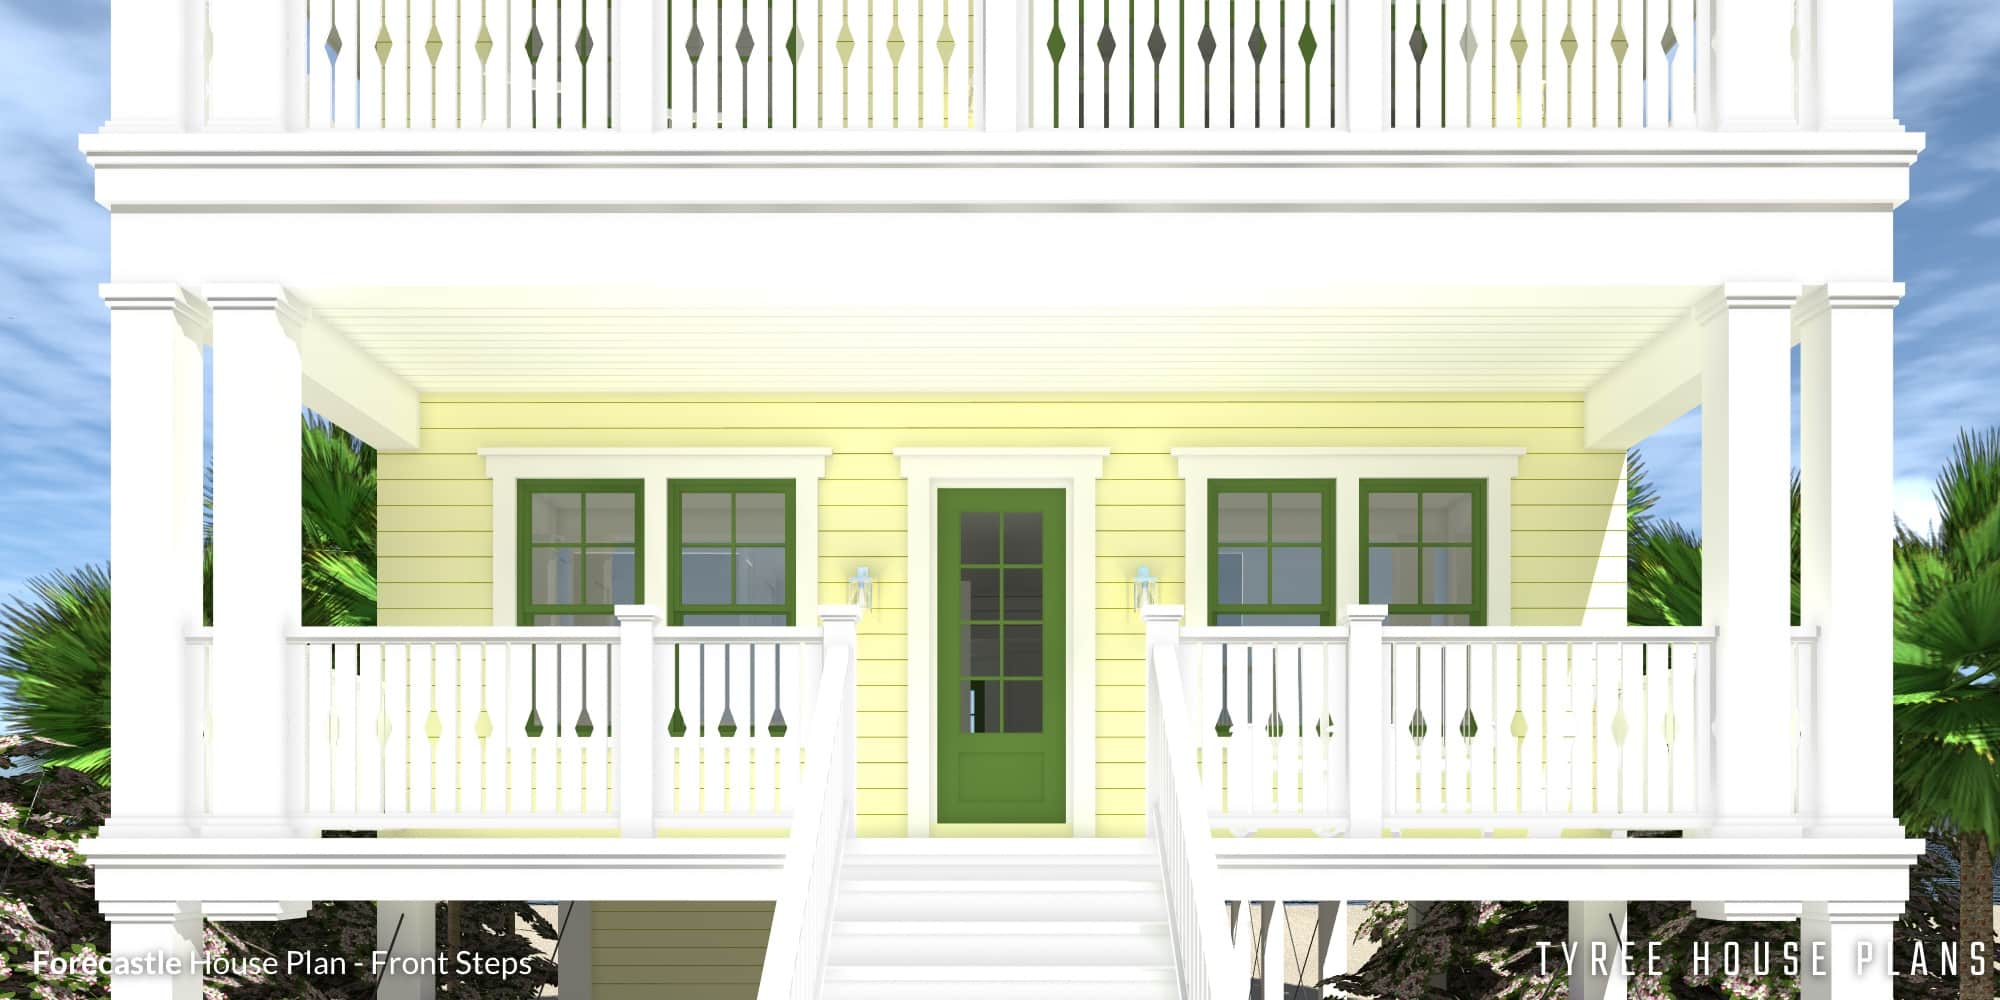 Front Porch - Forecastle House Plan by Tyree House Plans